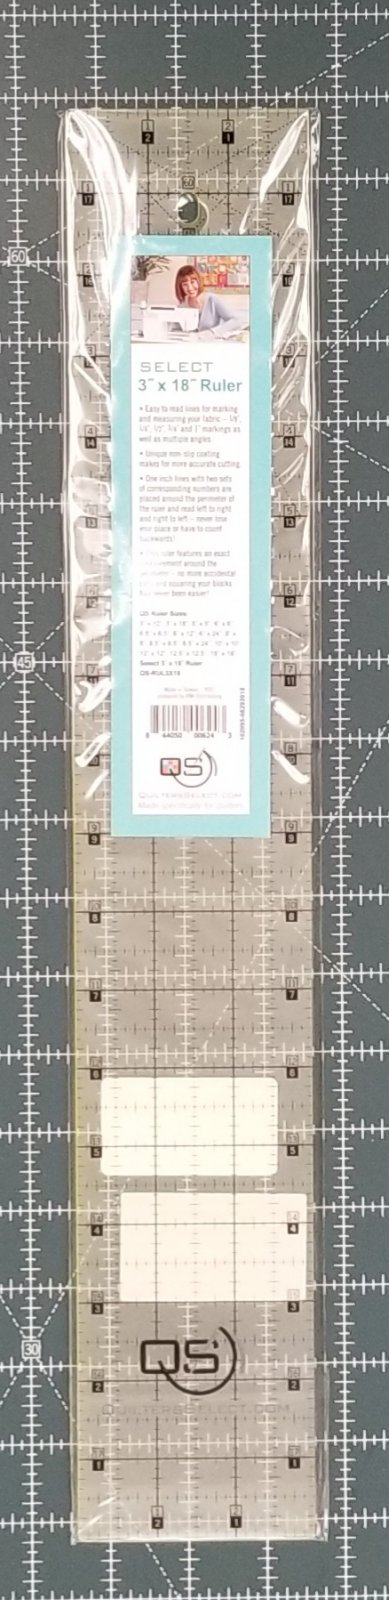 Quilters Select Rulers - 3 x 18